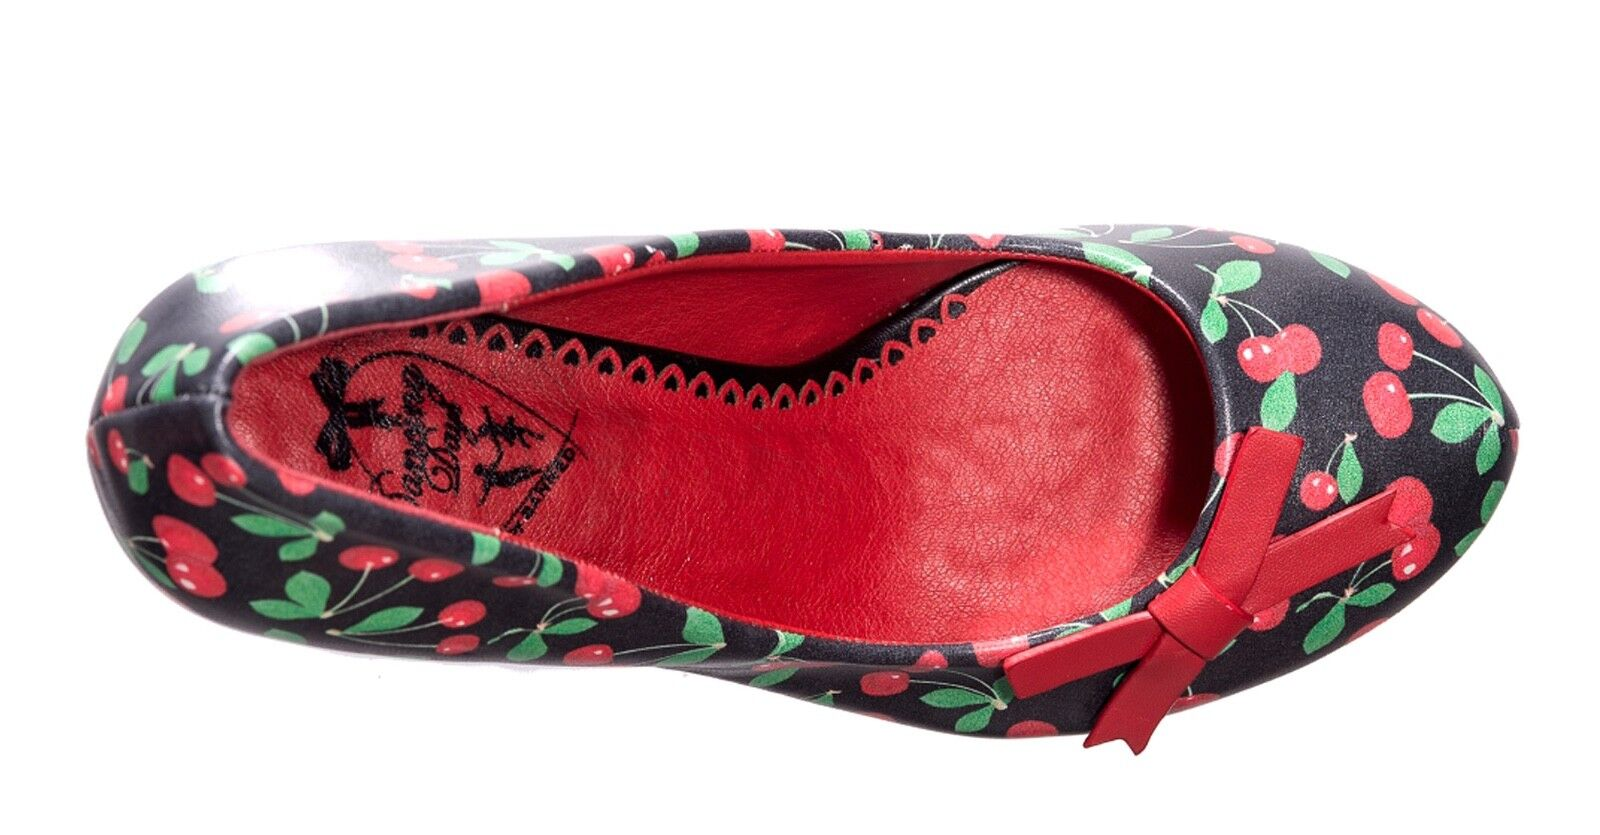 Banned style NEW nero red cherry print high heel vintage style Banned court shoes sizes 3-8 7226ad